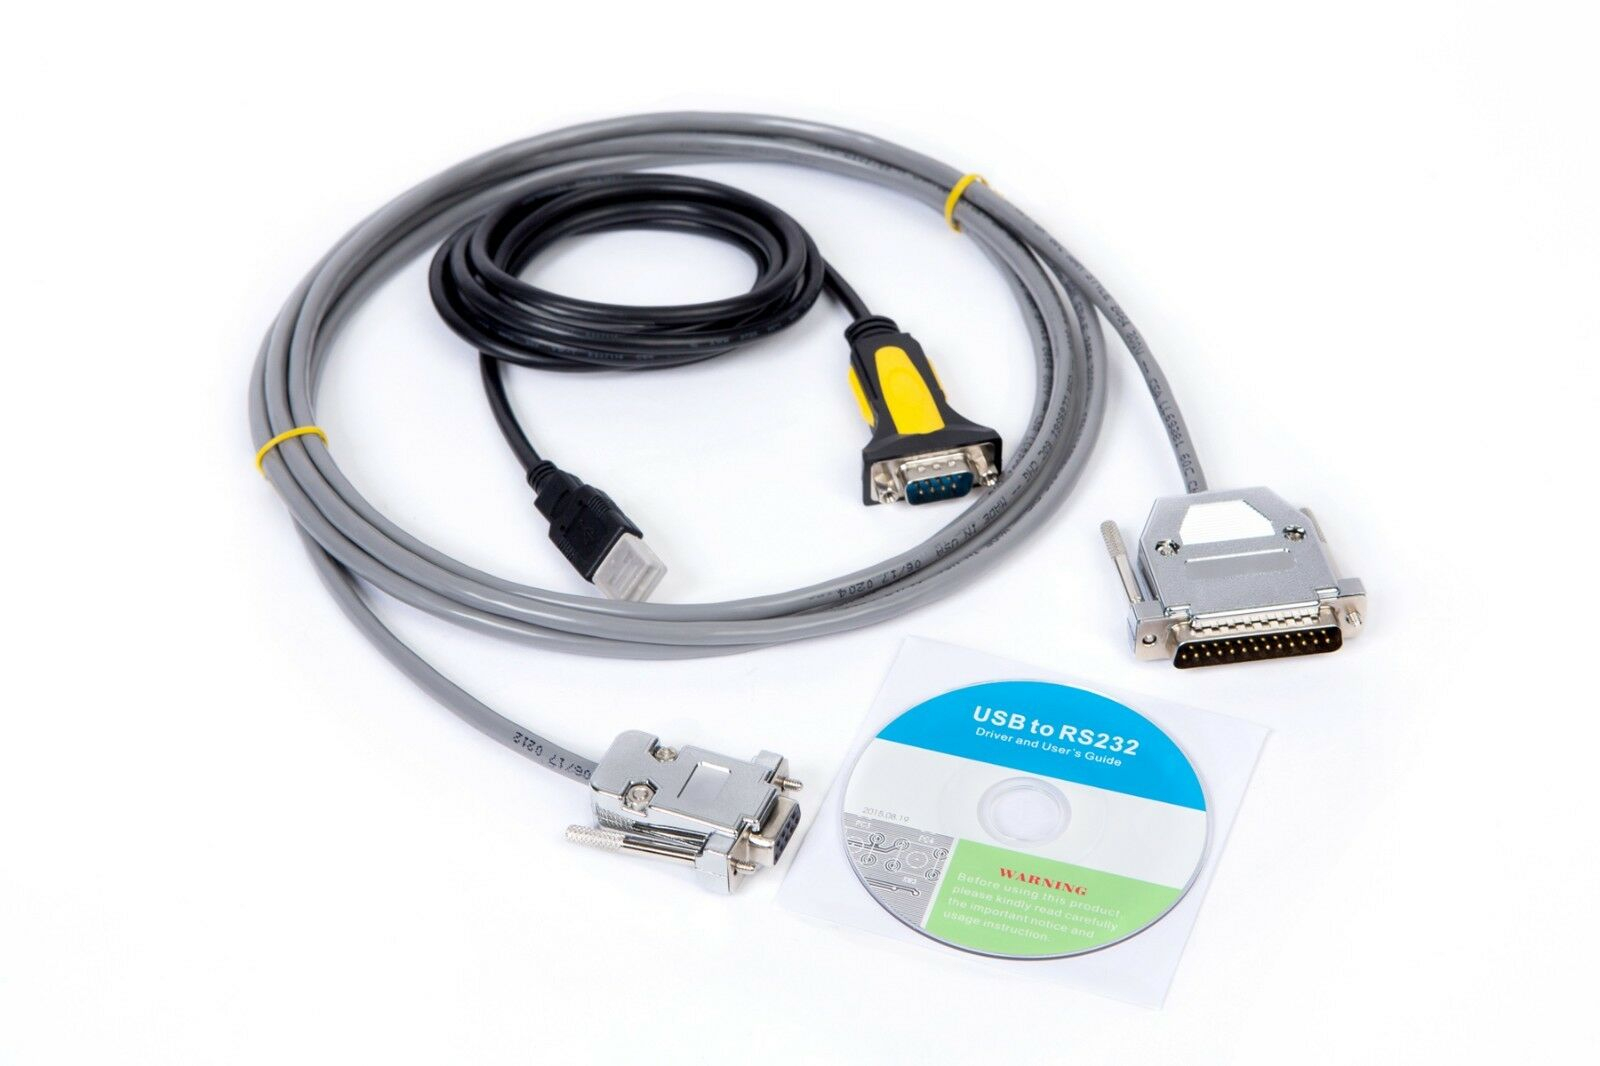 50 Ft Fanuc Rs232 Serial Cable Db9F To Db25M Cnc Dnc For Pc And - D2-Dscbl Usb Wiring Diagram